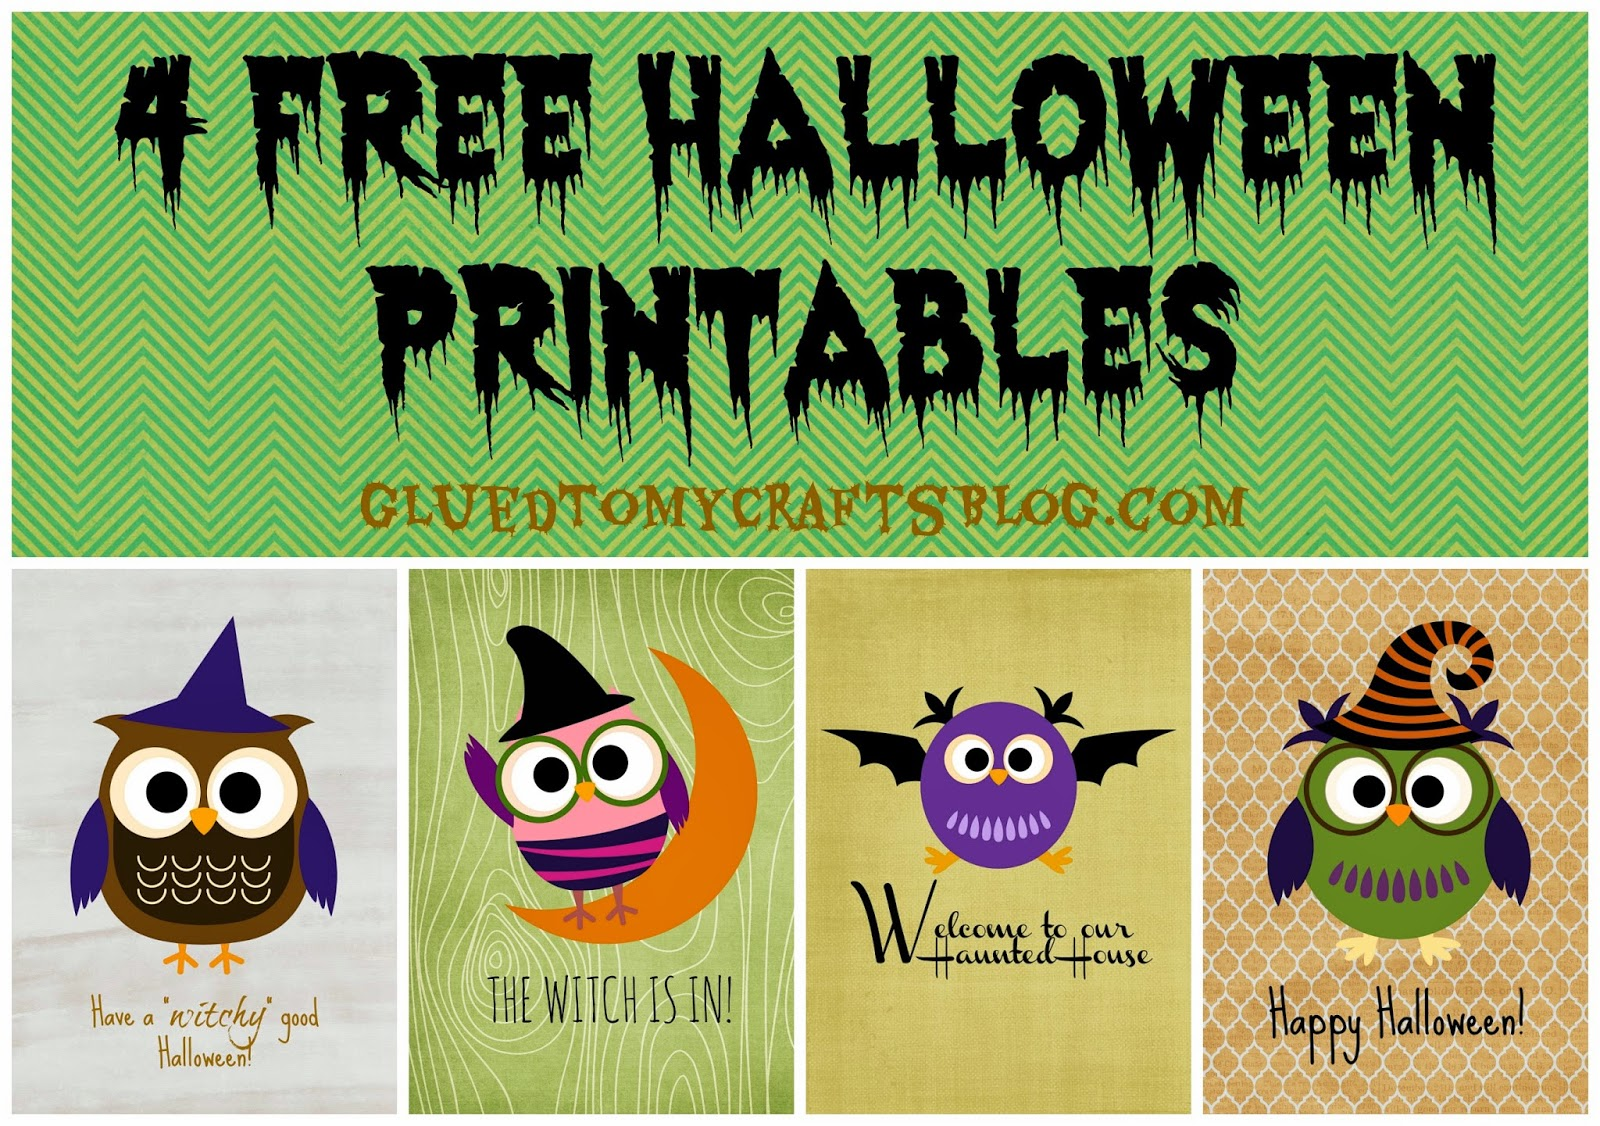 This is an image of Rare Free Halloween Printable